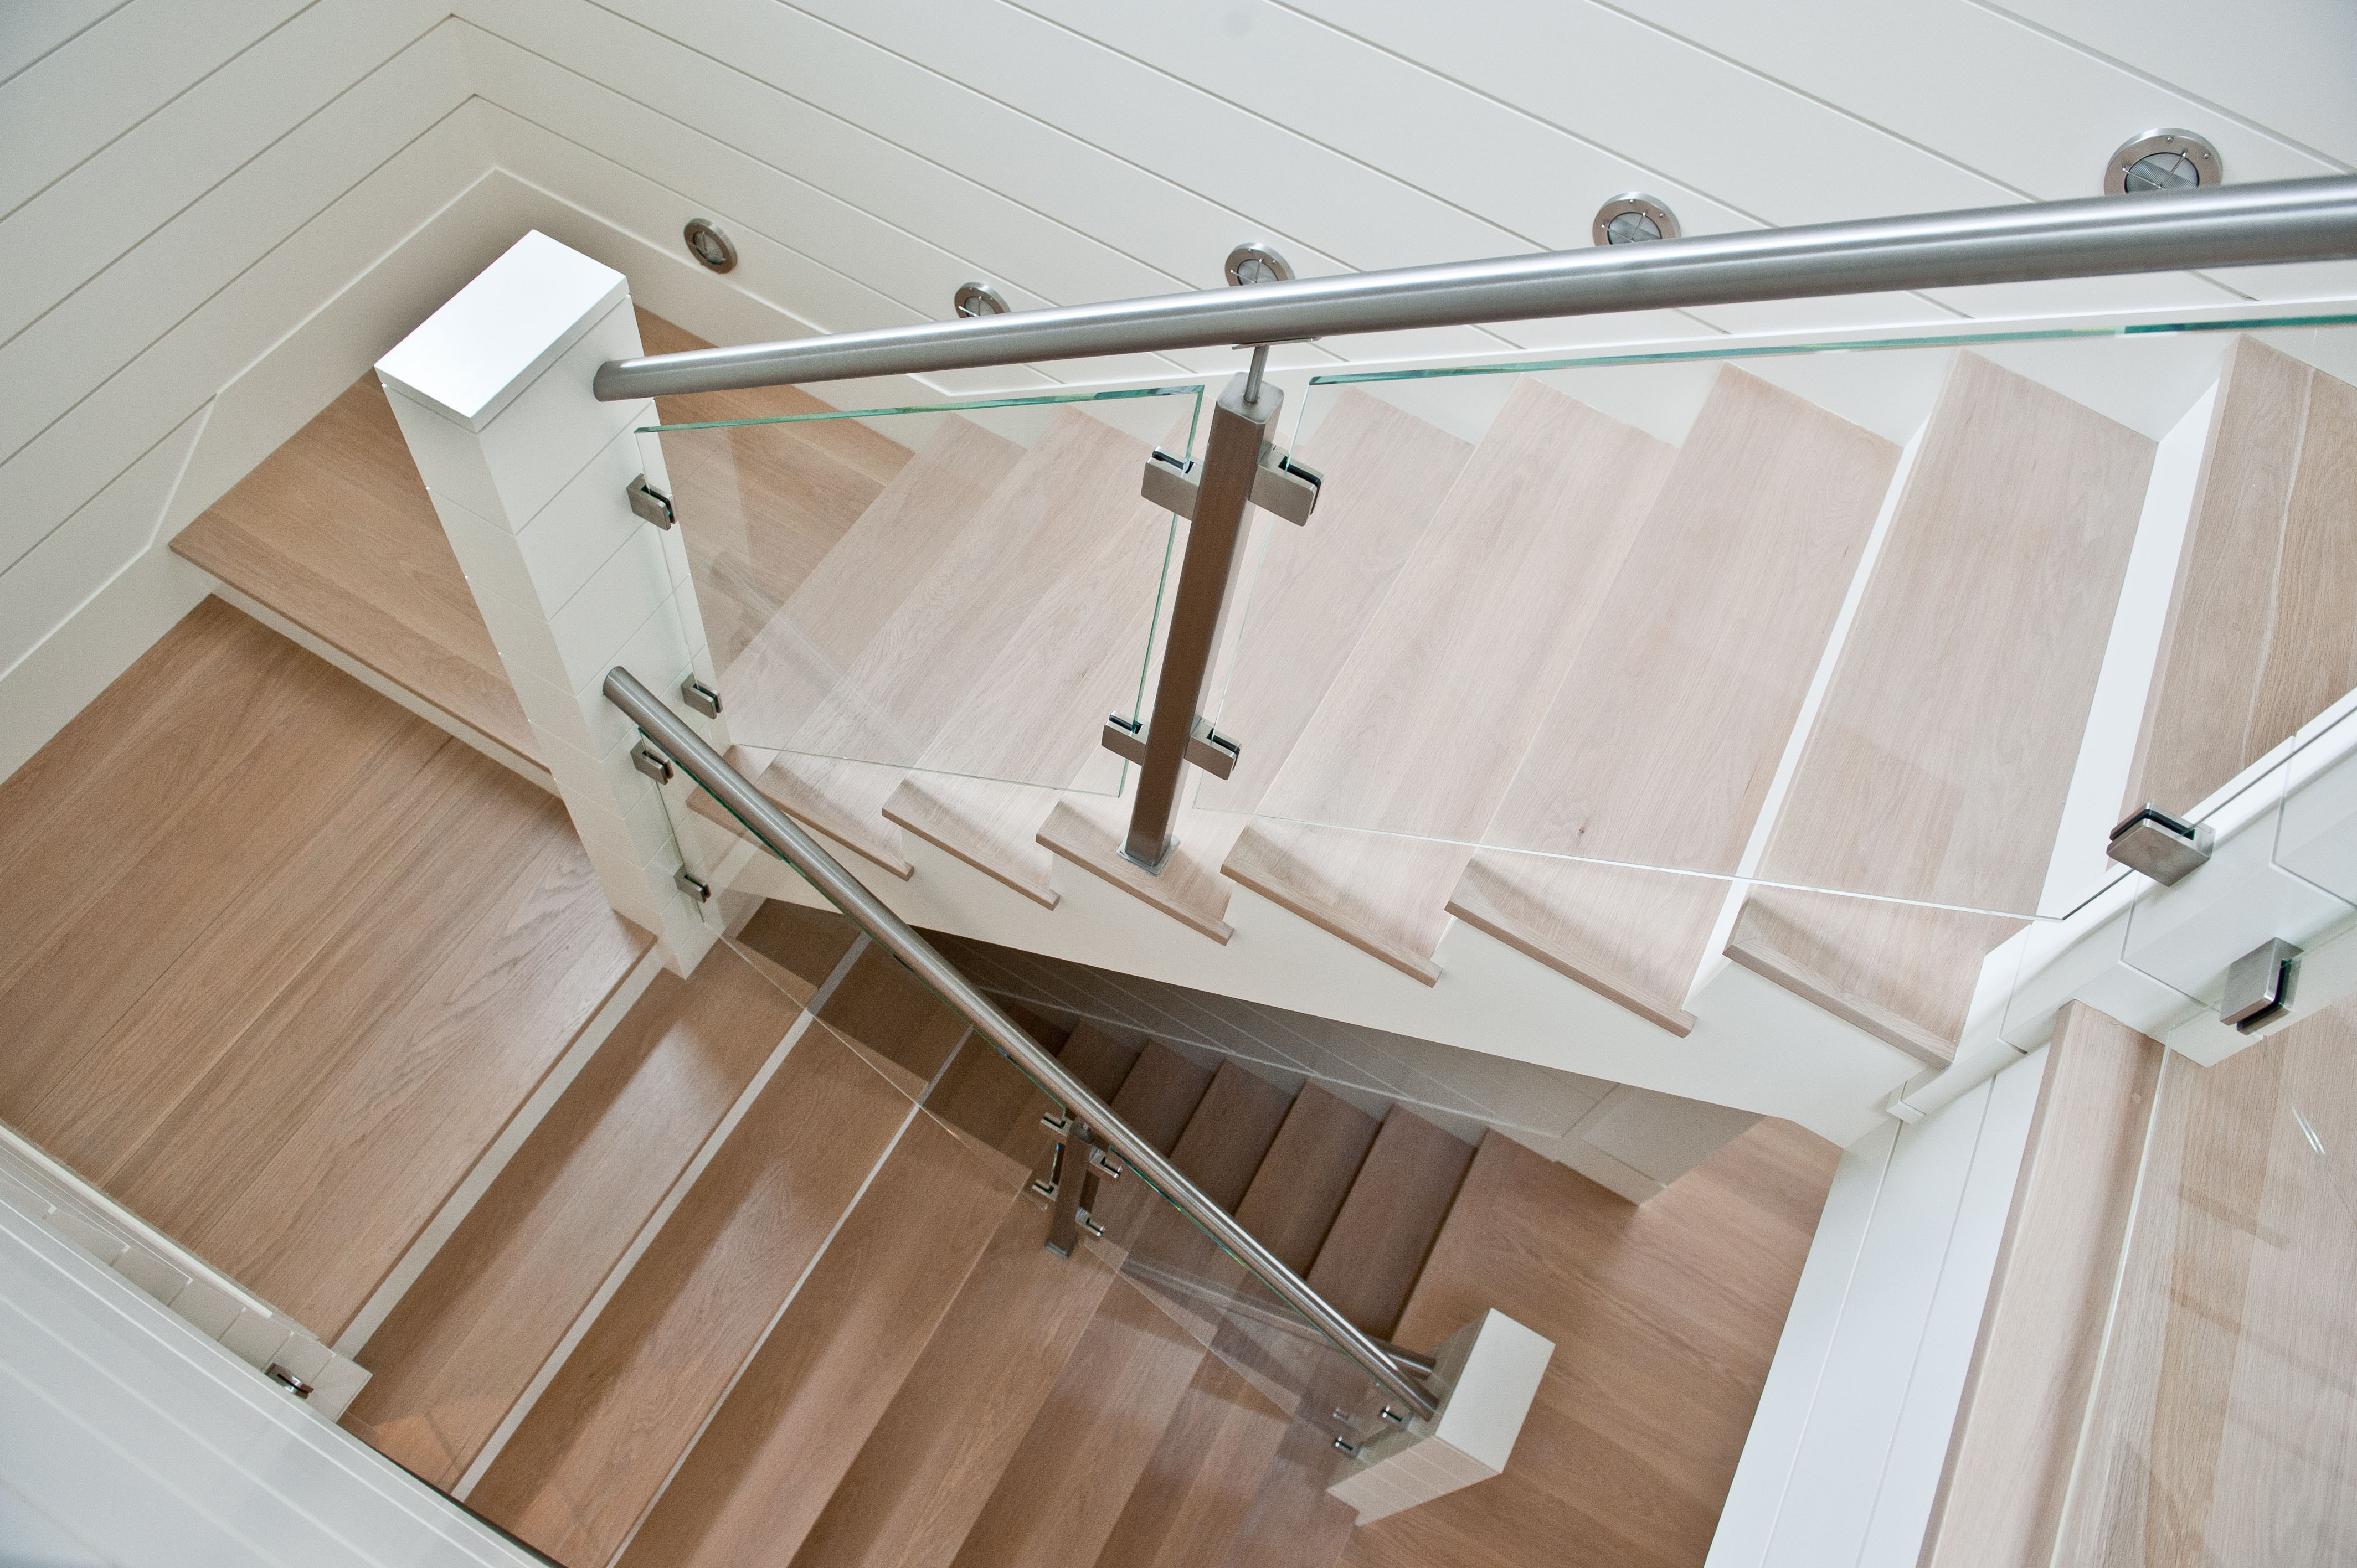 Glass railing with stainless steel hand rail